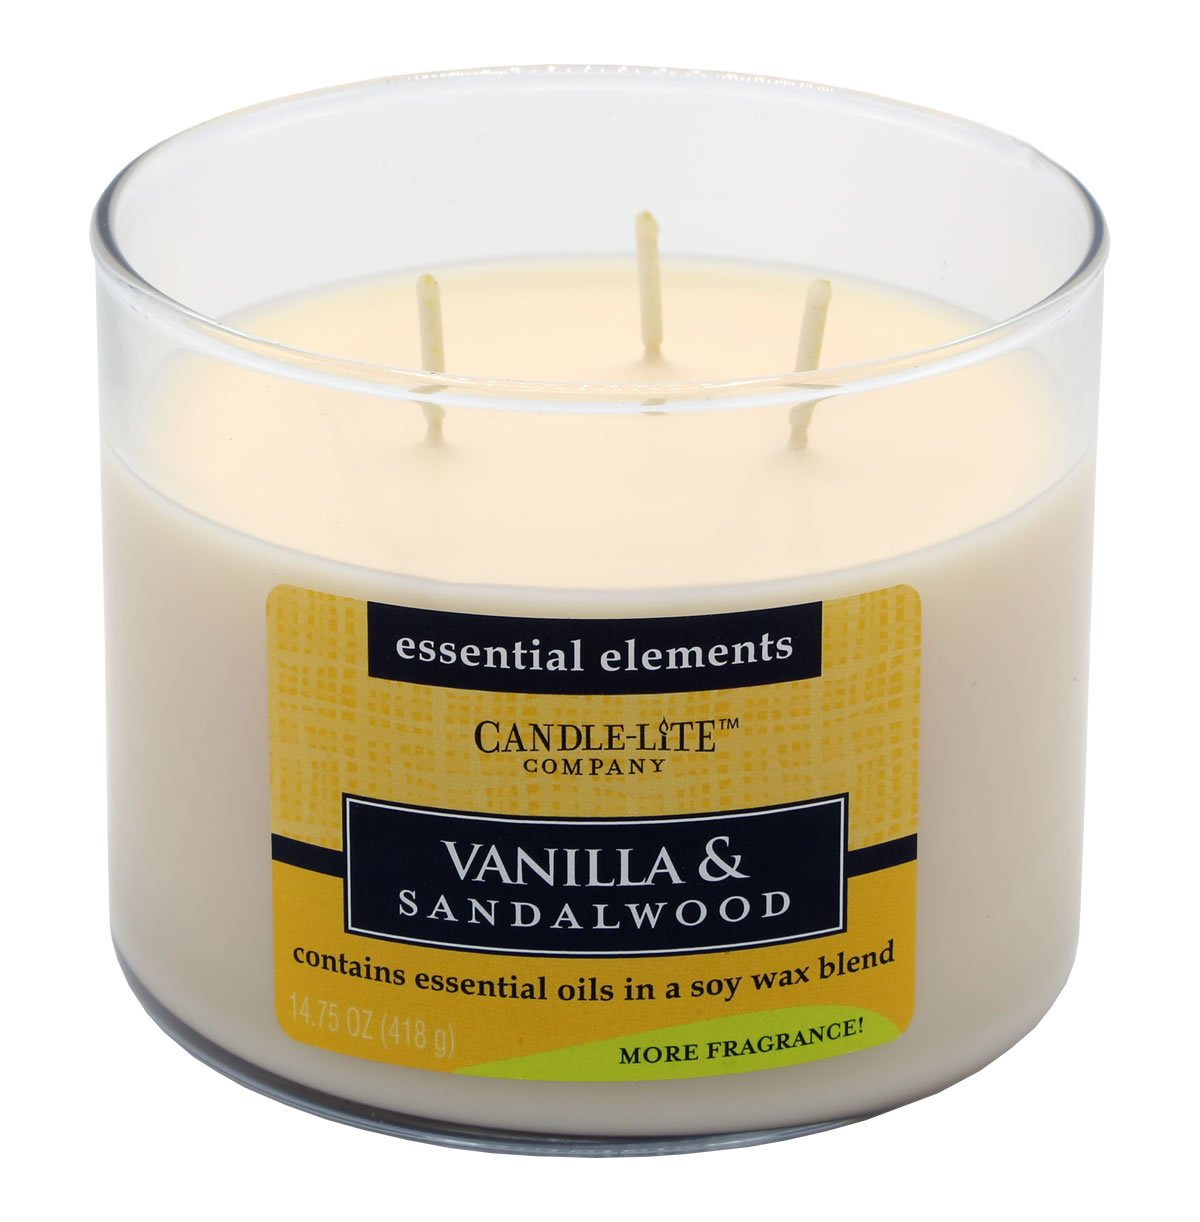 Candle-lite Soy Wax Vanilla and Sandalwood